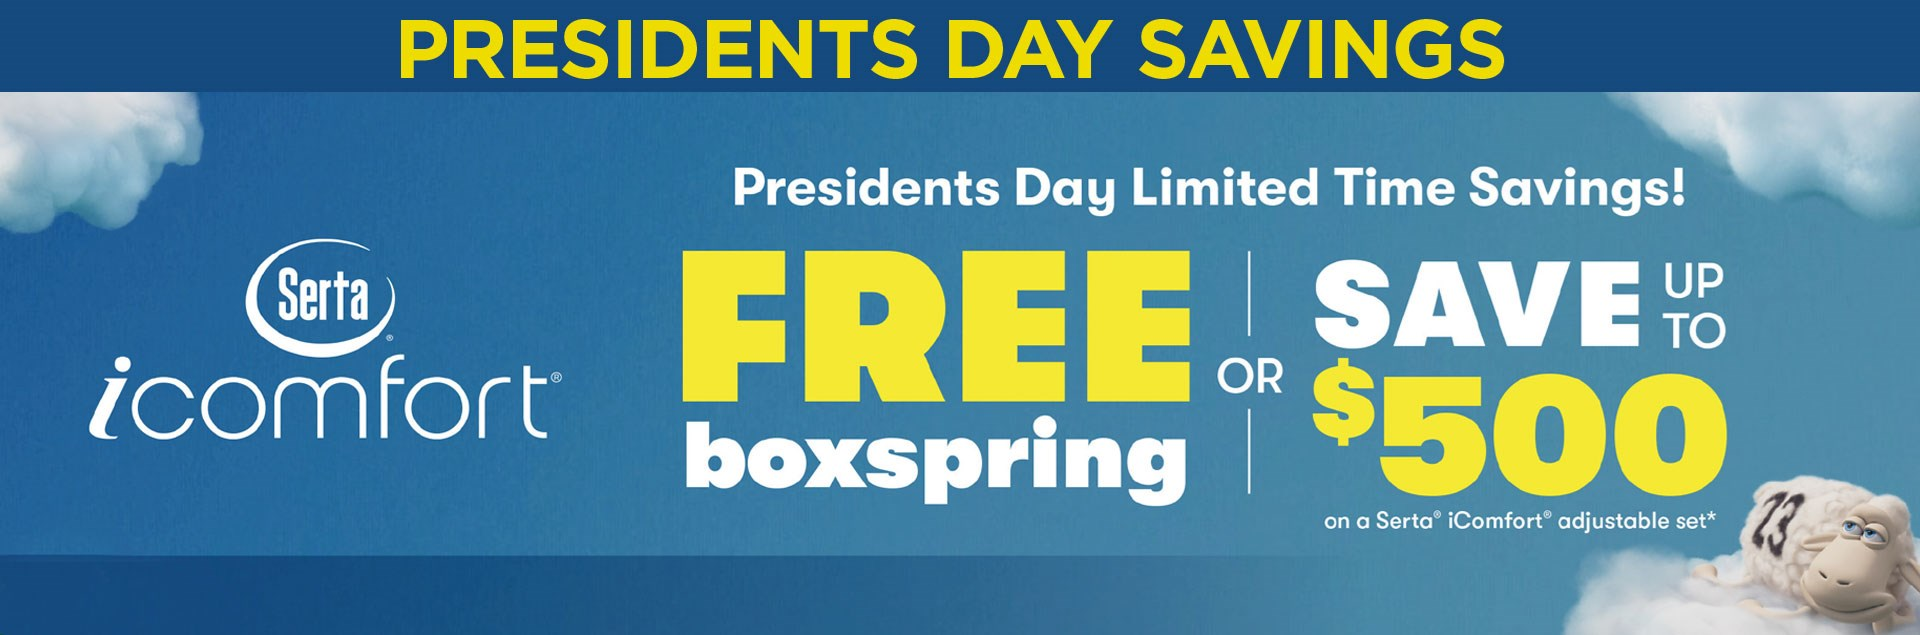 Ultimate Mattress Presidents Day Sale